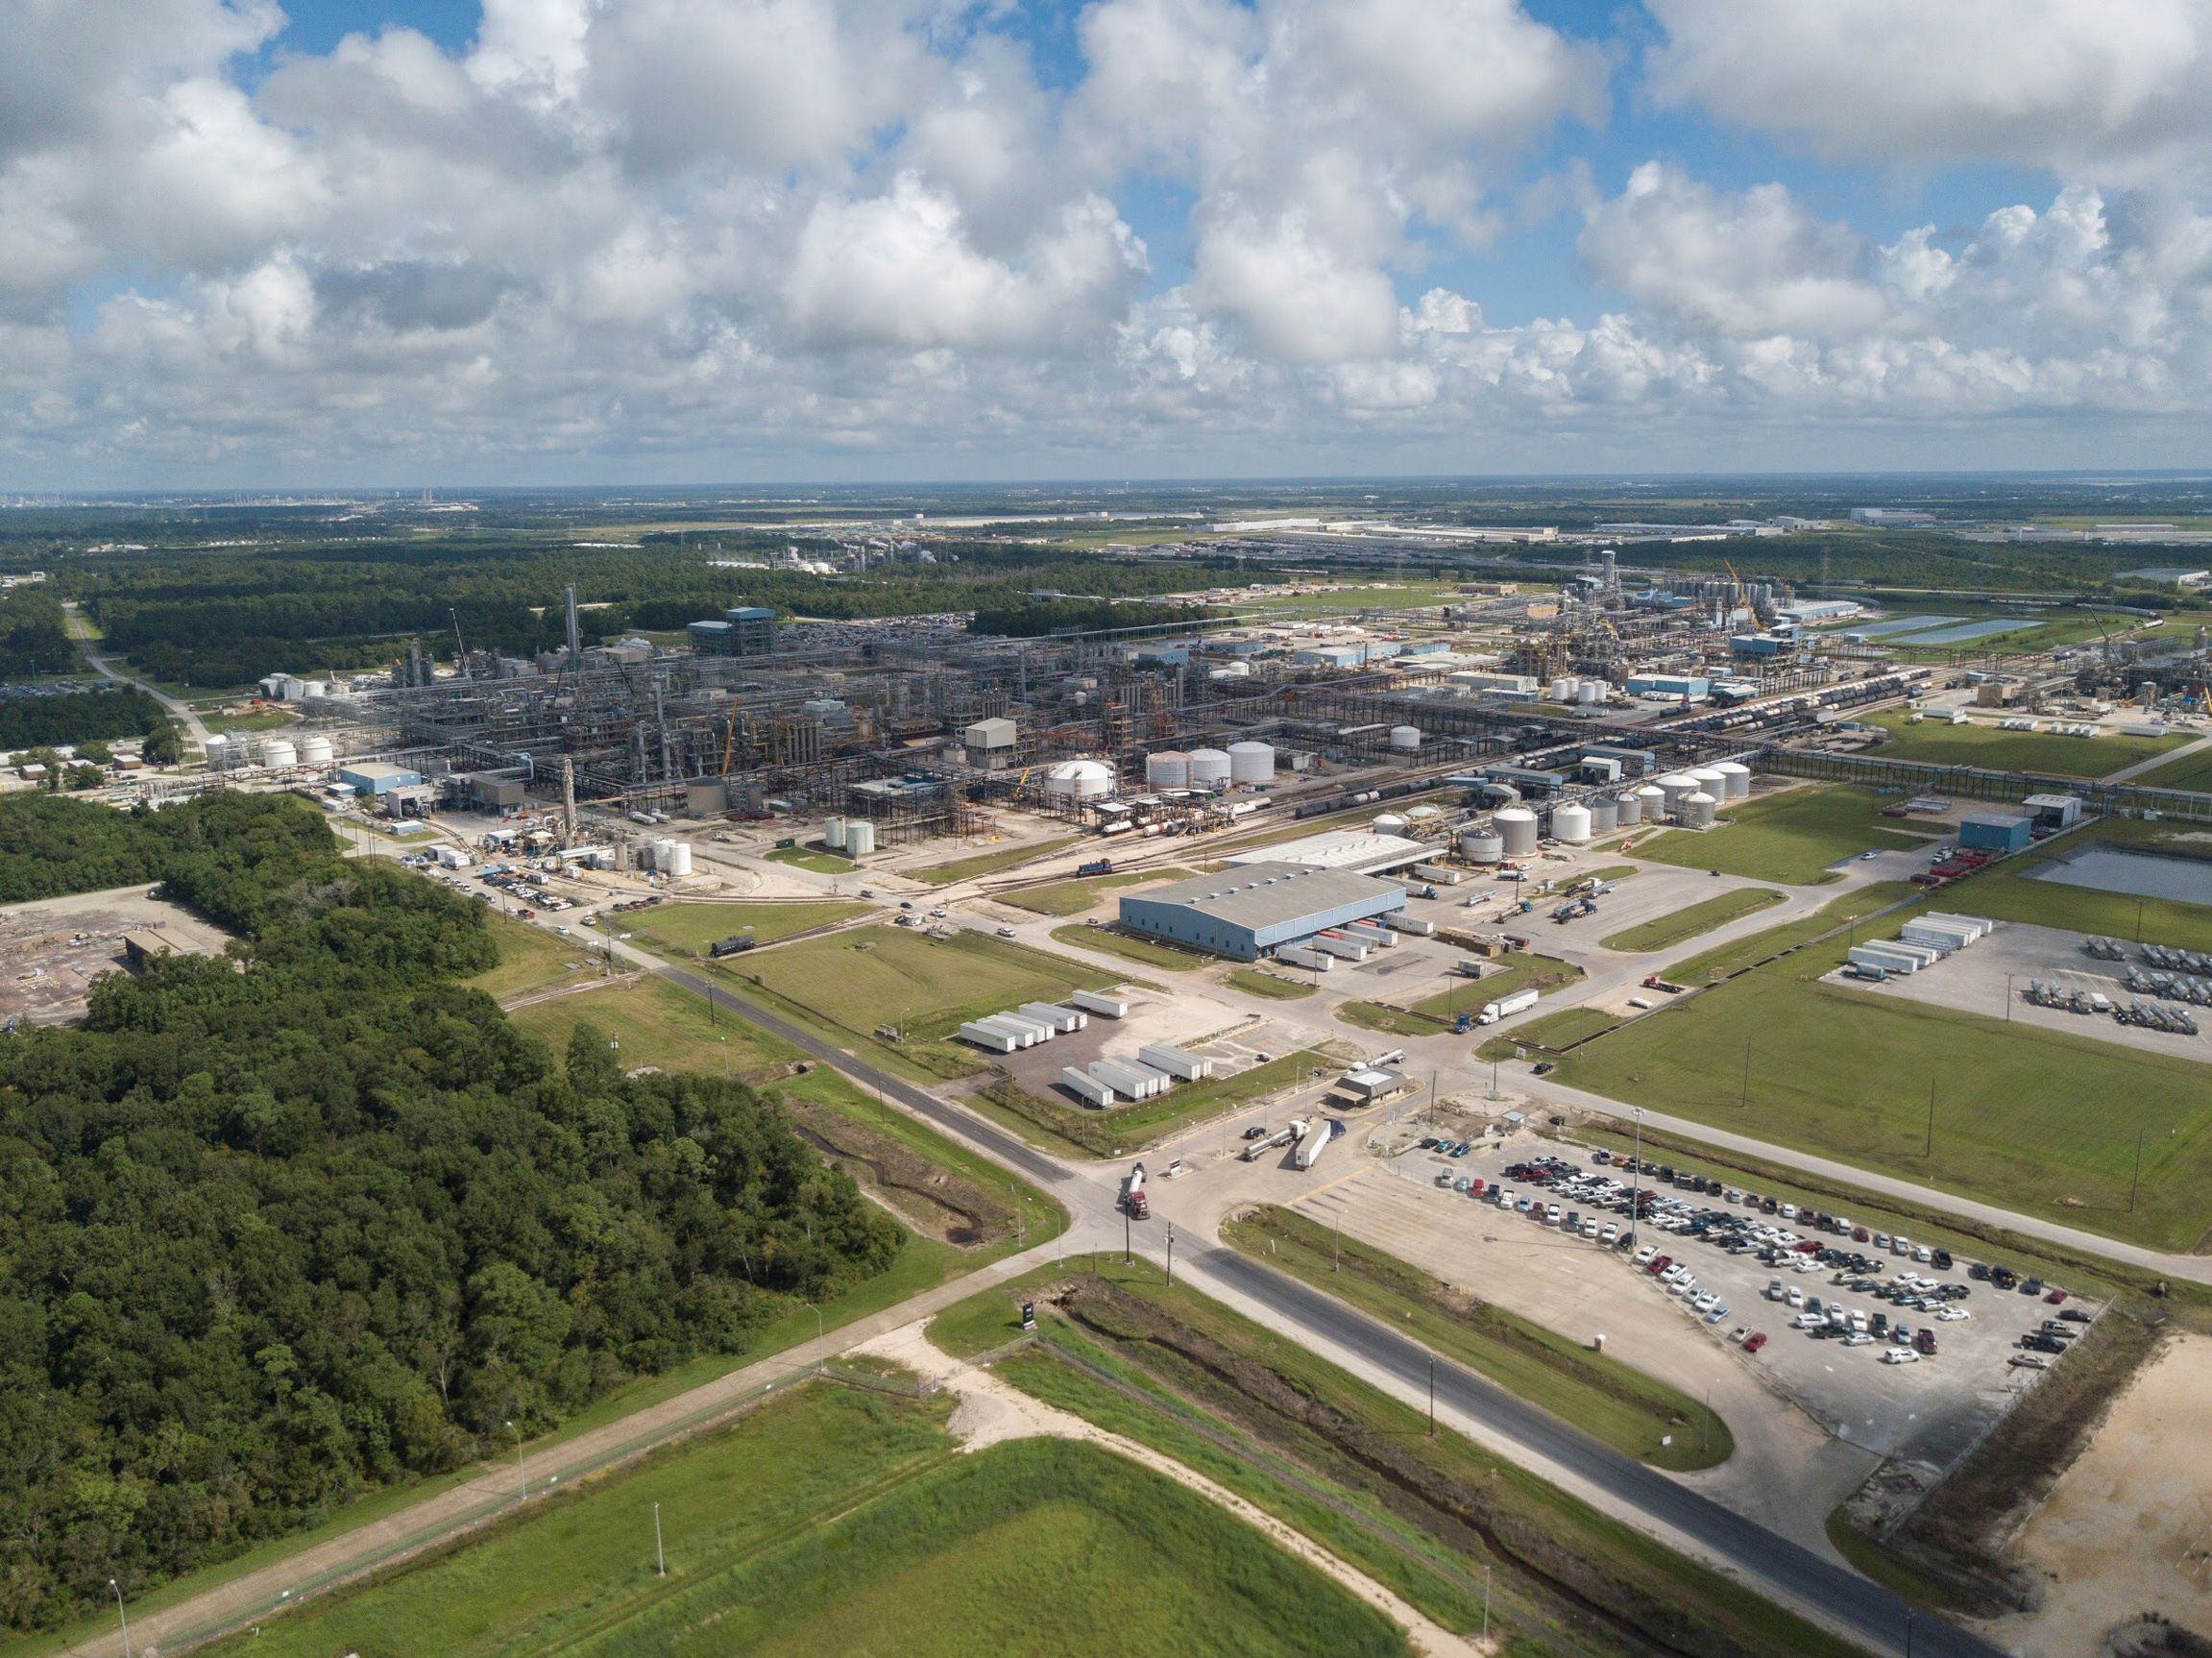 View on Covestro's production site in Baytown, TX, USA (Source: Covestro)